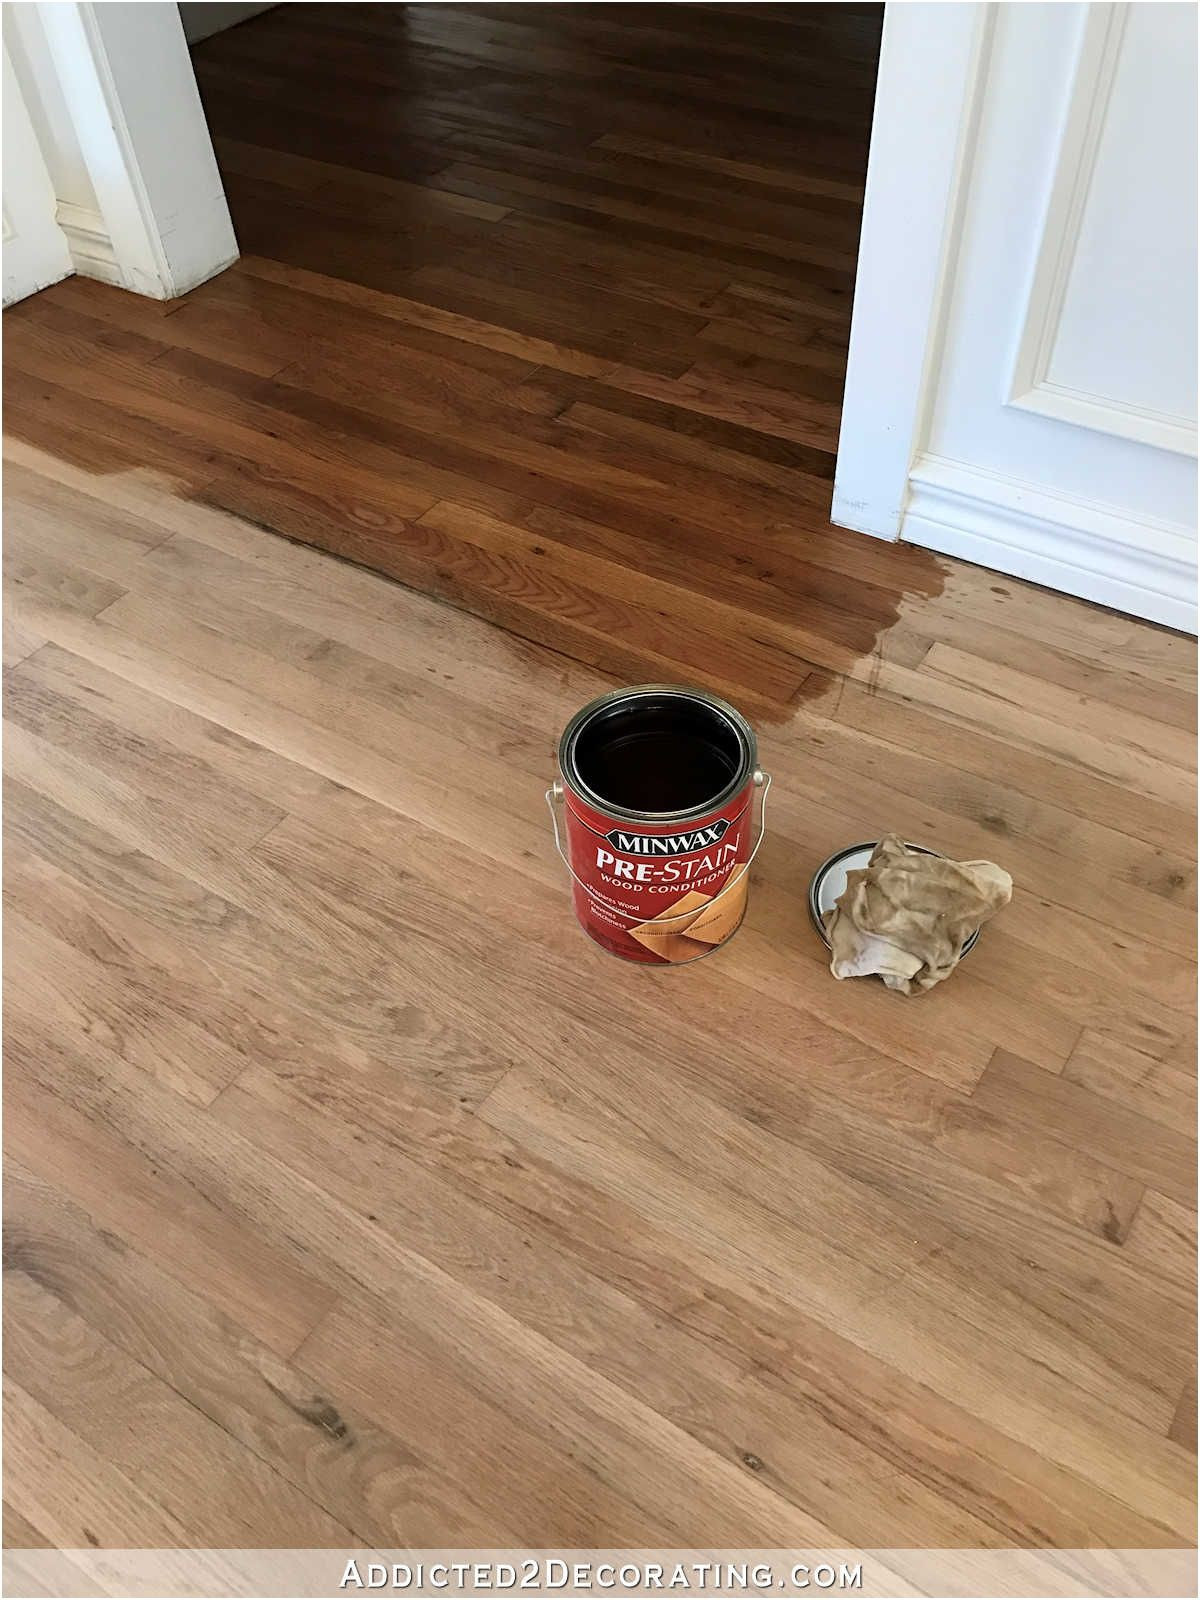 wide plank hardwood flooring of the wood maker page 5 wood wallpaper in cost to remove carpet and install laminate flooring graphies concept concepts of laminate wood flooring cost